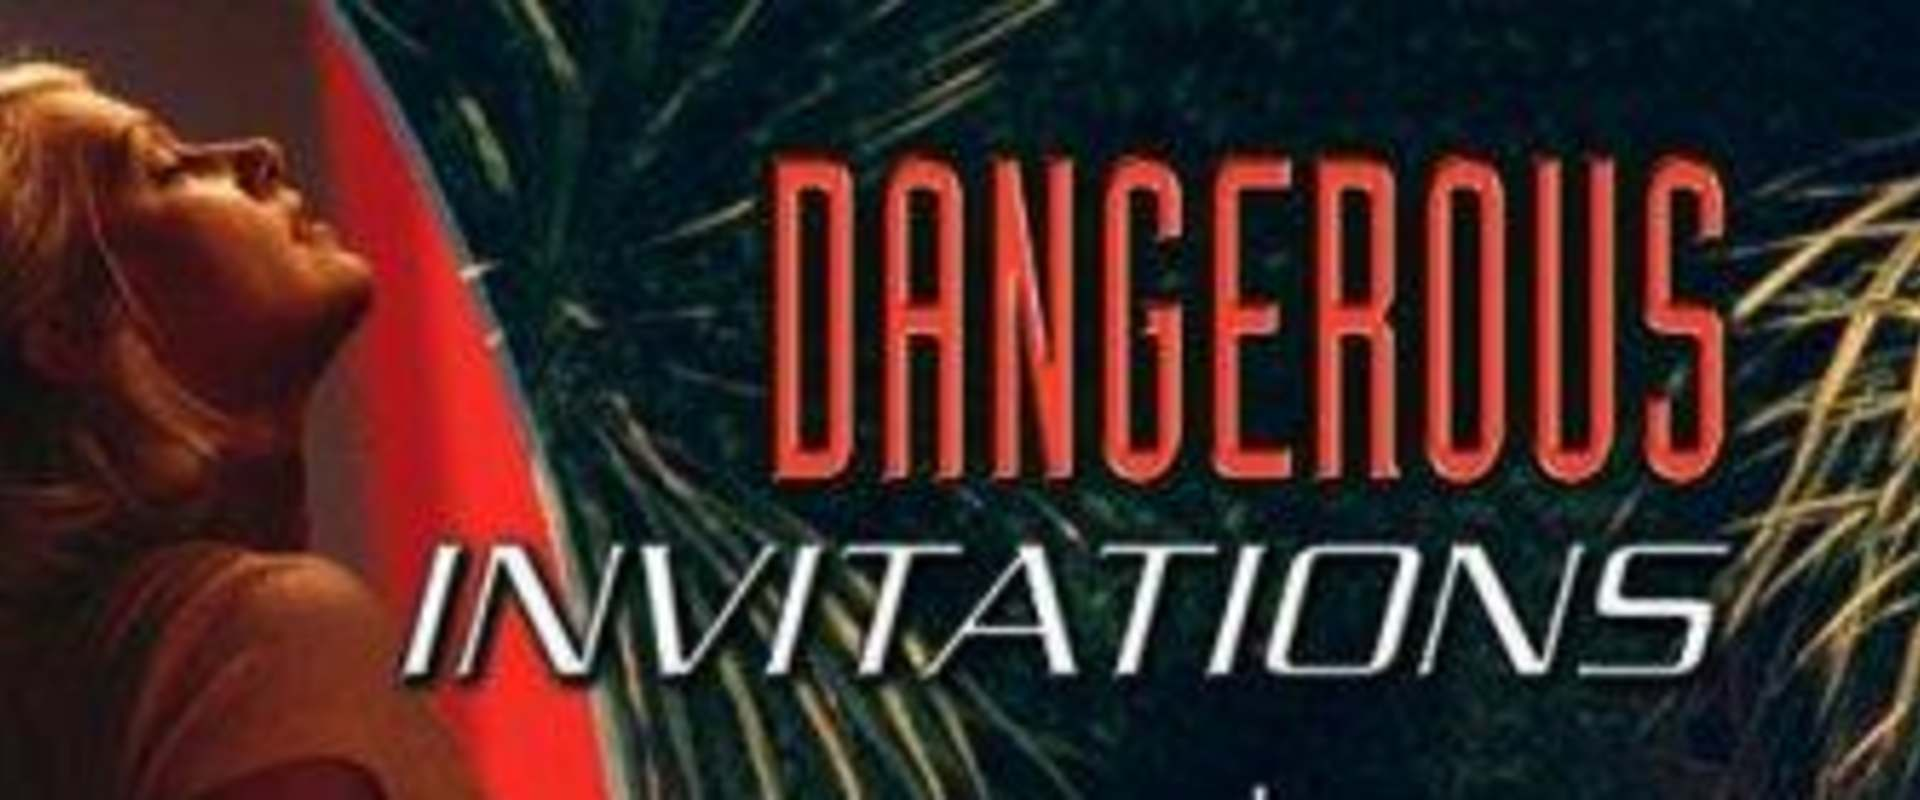 Dangerous Invitations background 1